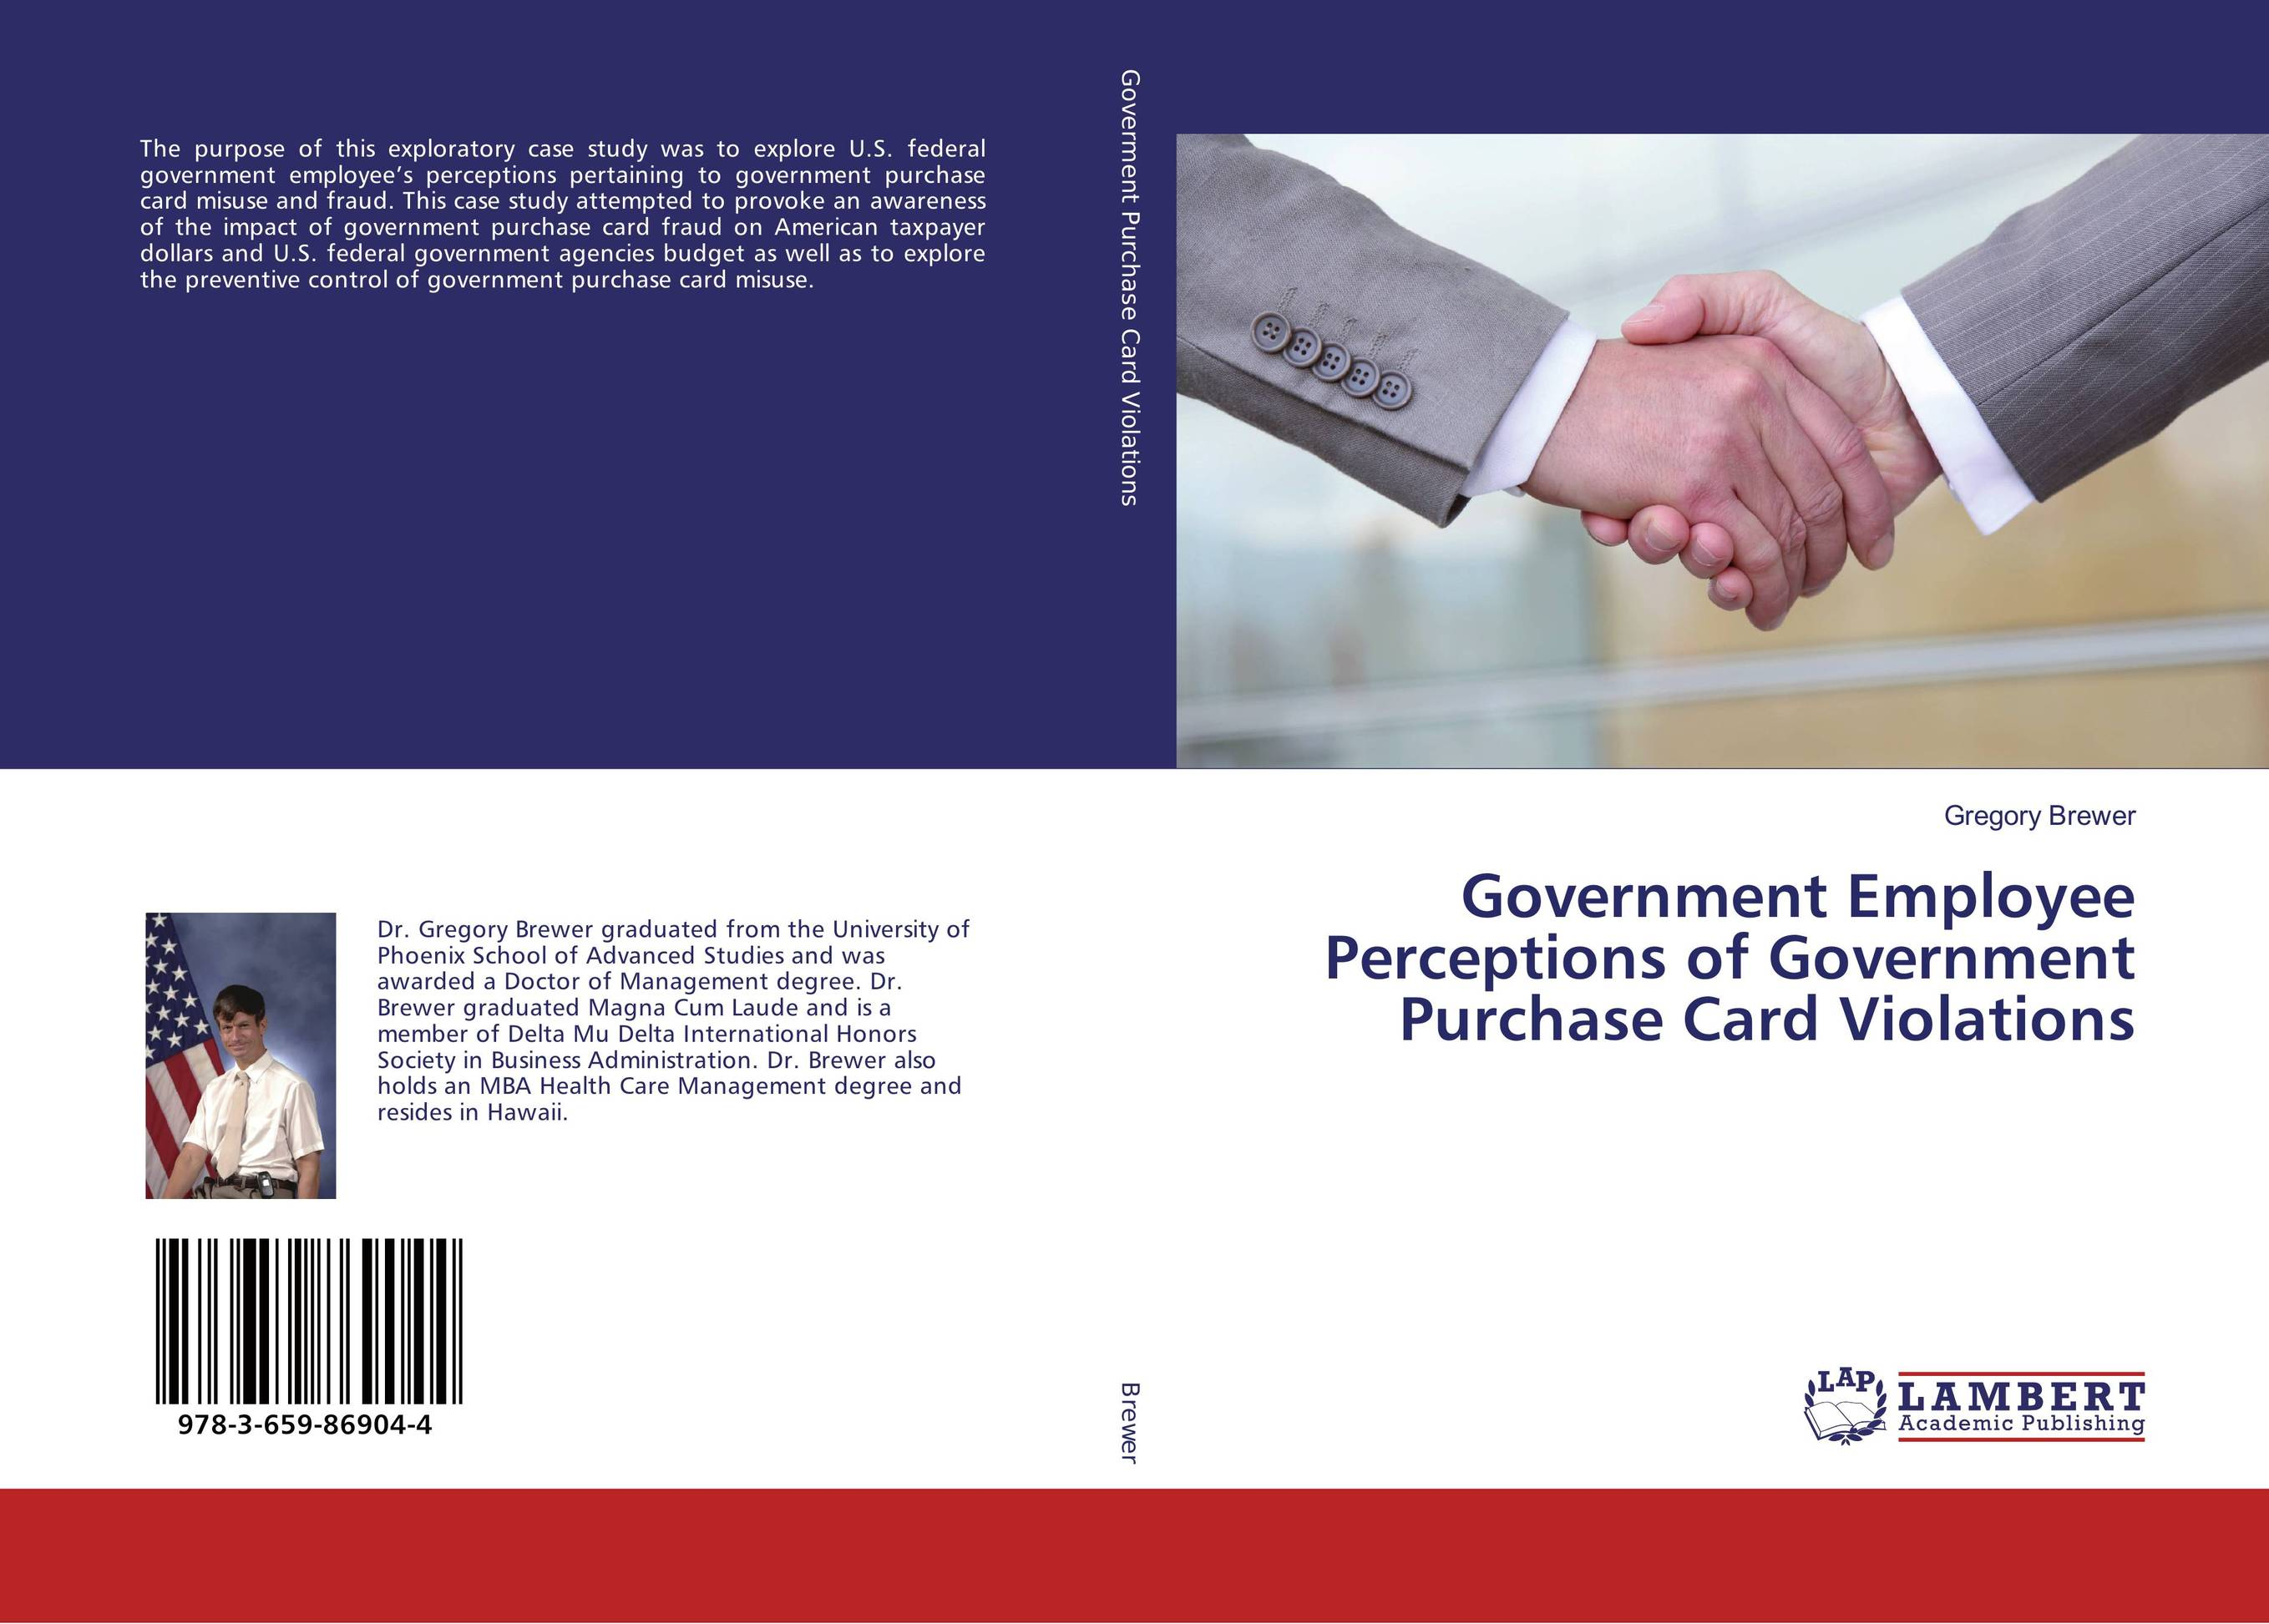 Government Employee Perceptions of Government Purchase Card Violations